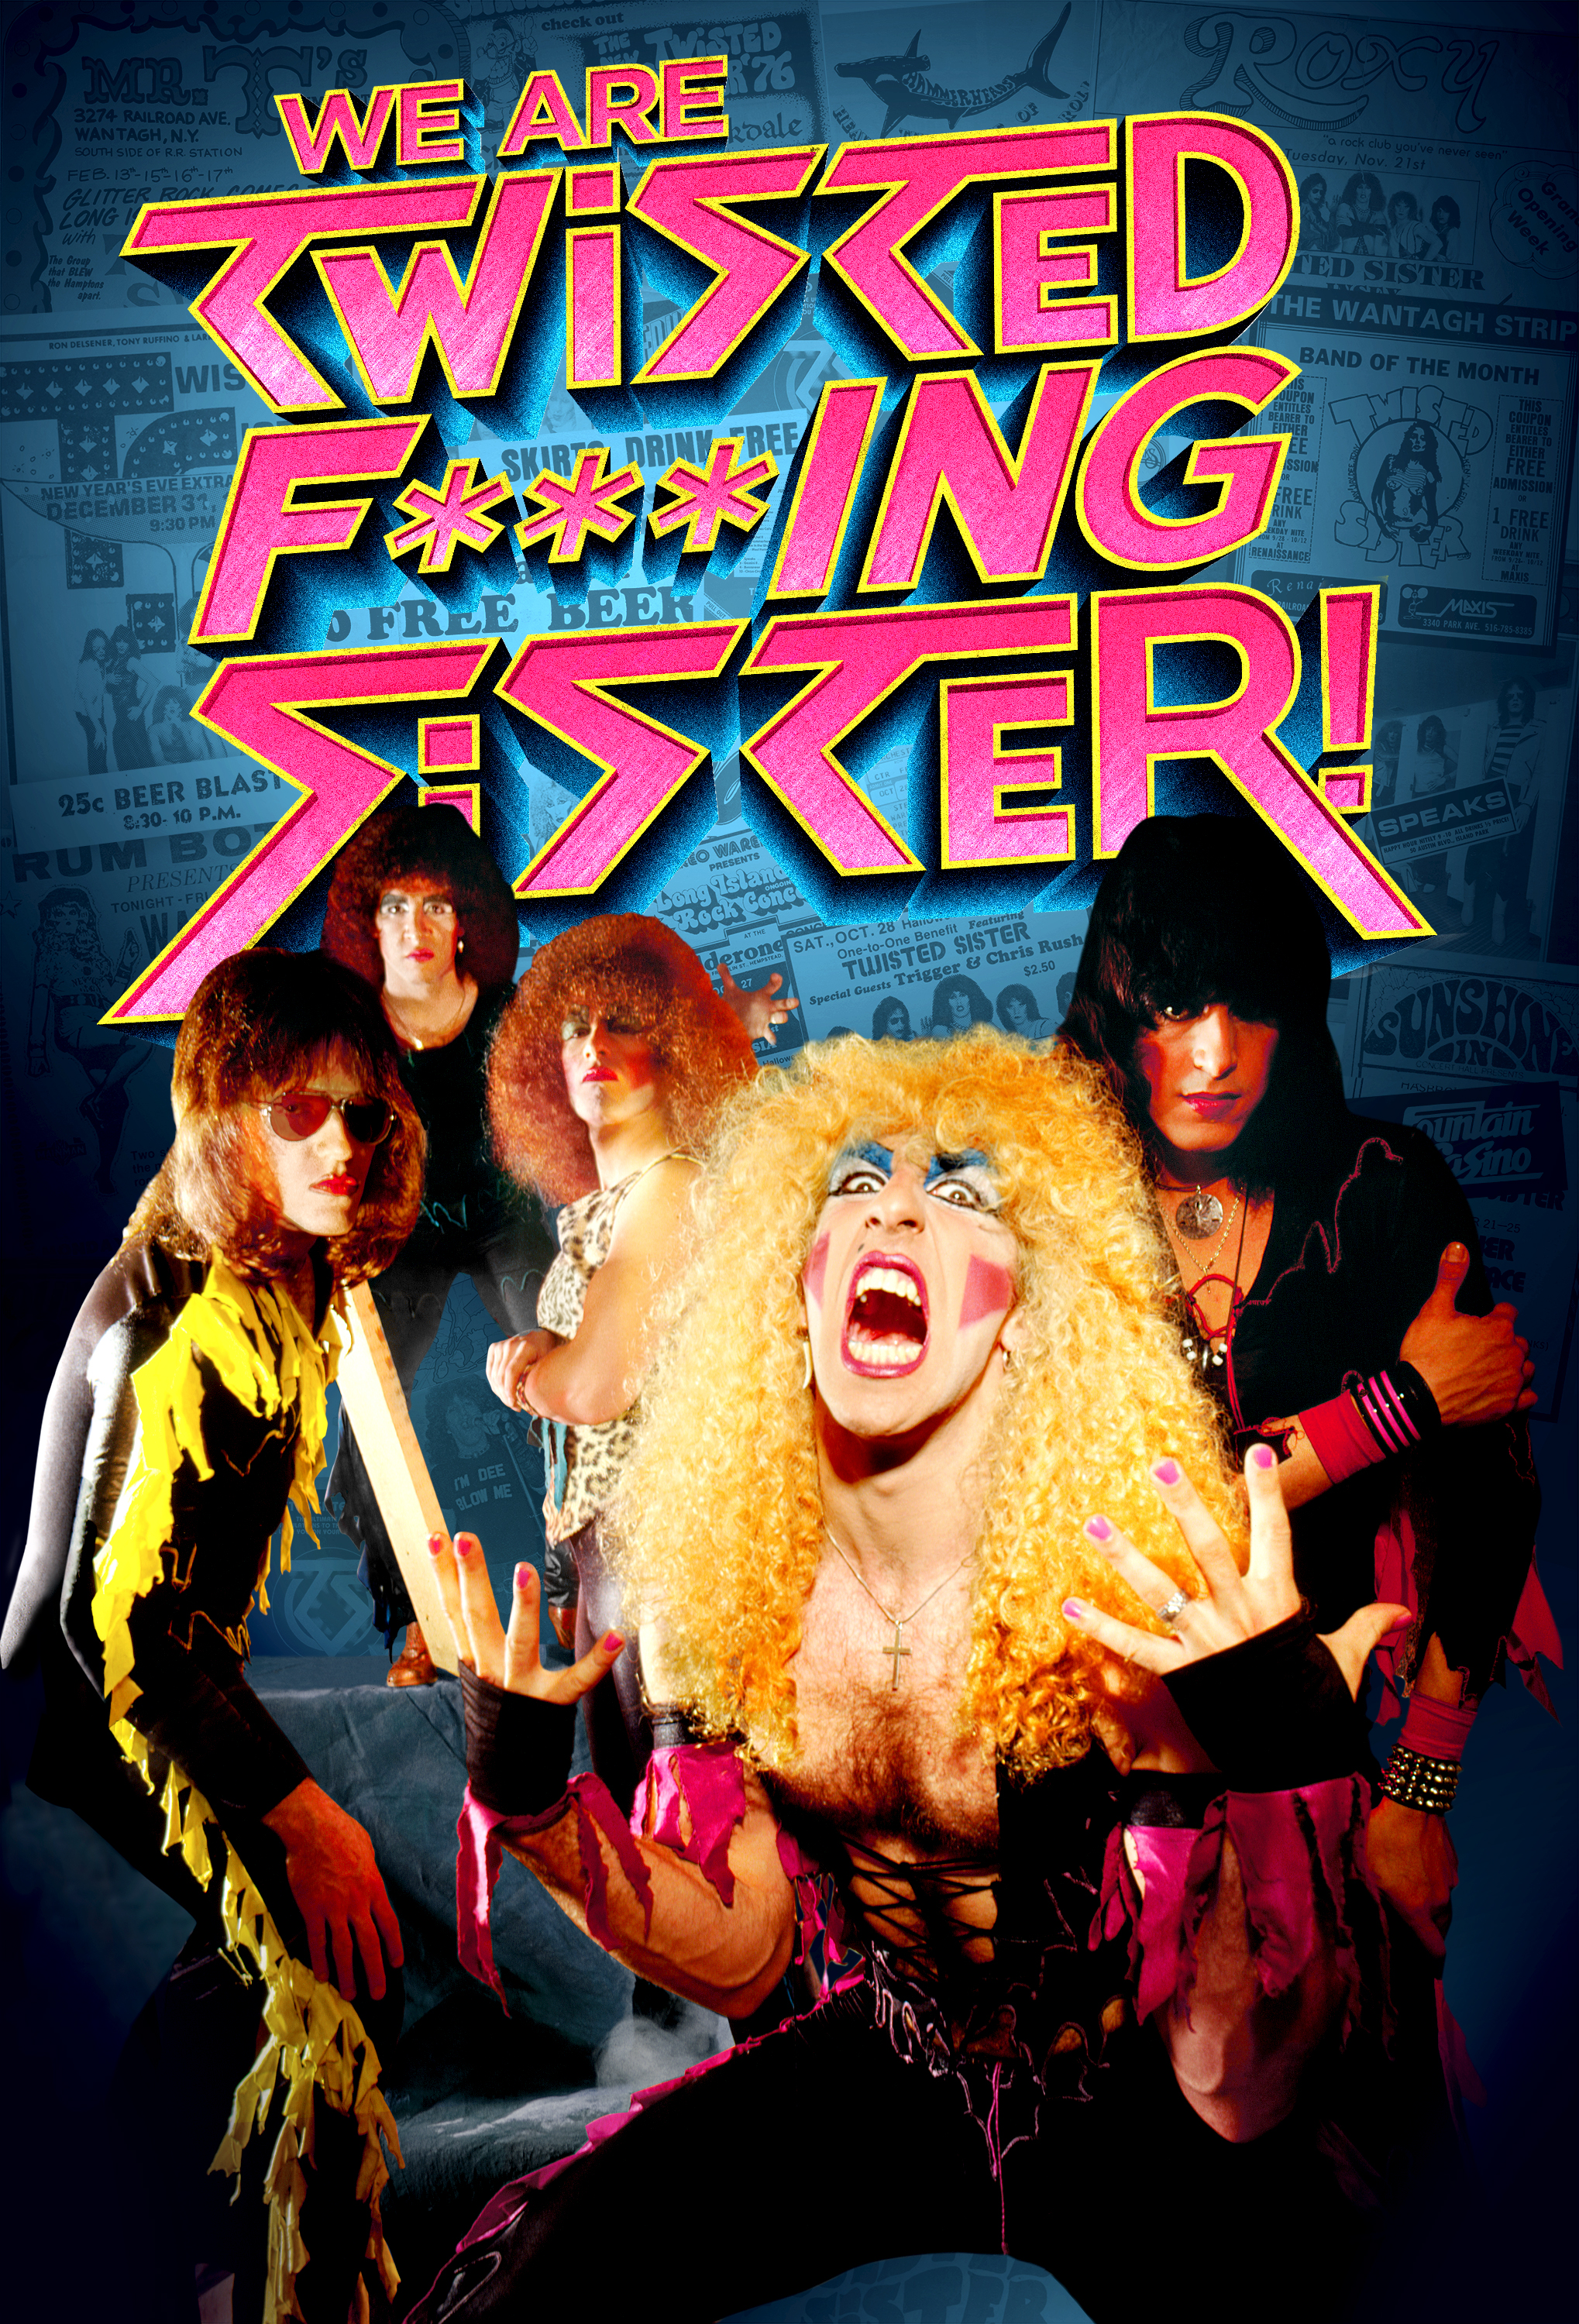 We Are Twisted Sister